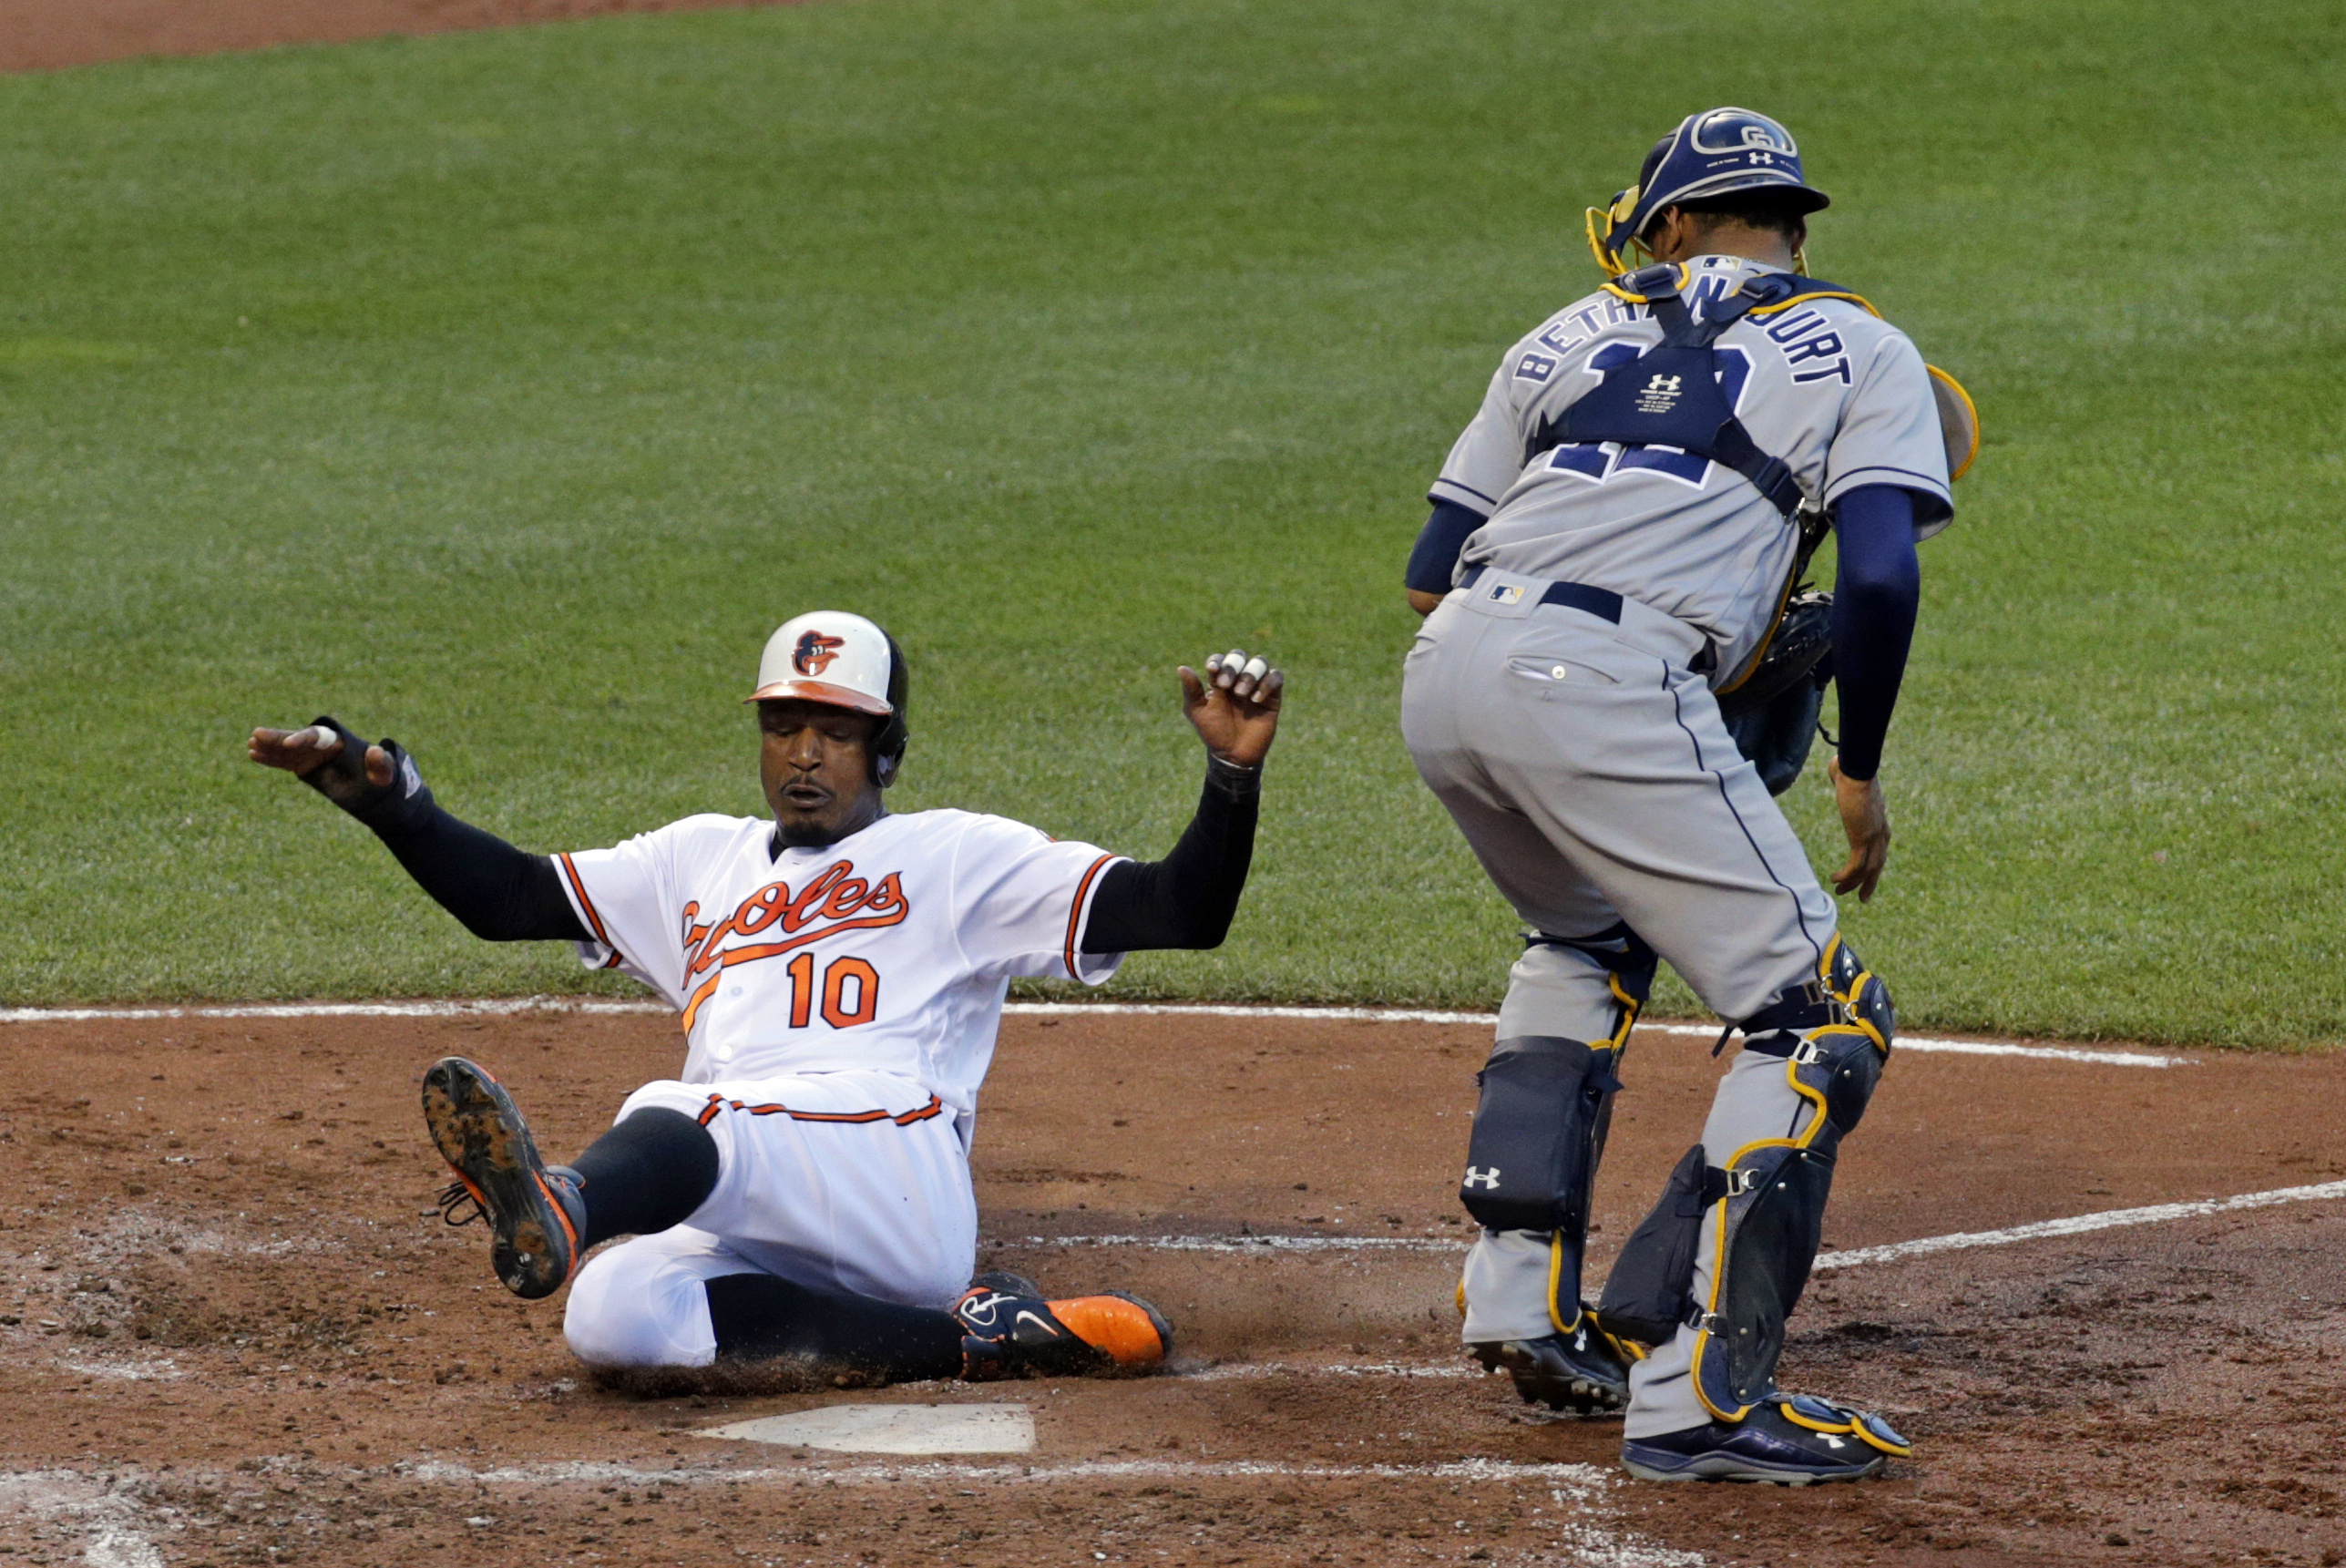 Baltimore Orioles' Adam Jones, left, scores in front of San Diego Padres catcher Christian Bethancourt on a Jonathan Schoop double in the third inning of an interleague baseball game in Baltimore, Wednesday, June 22, 2016. (AP Photo/Patrick Semansky)